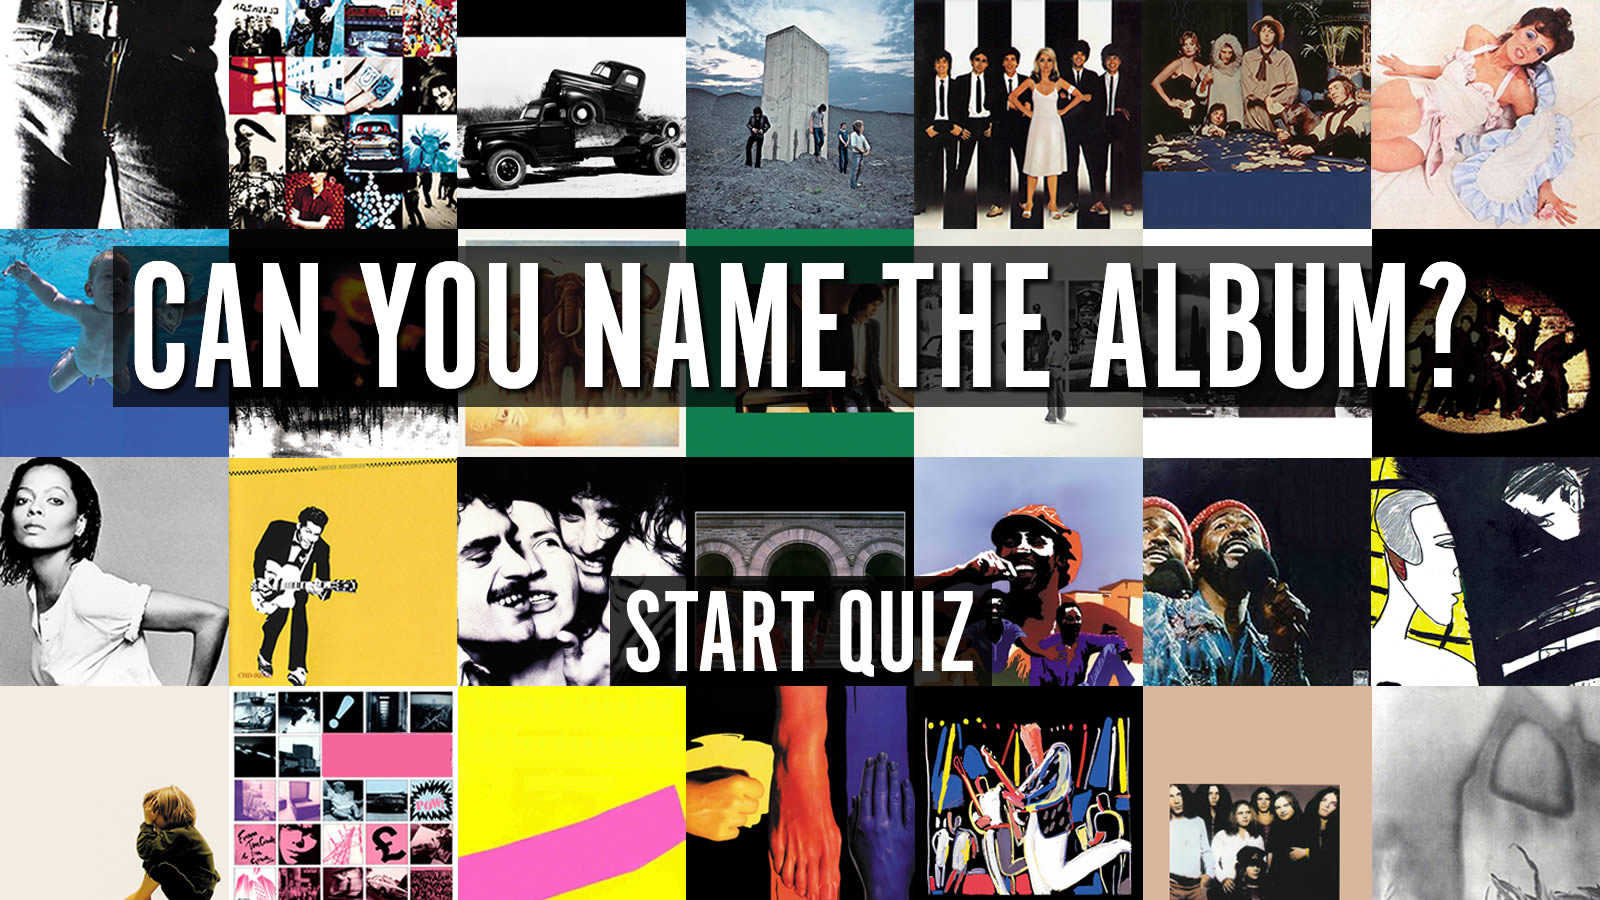 Can You Name The Album Uquiz